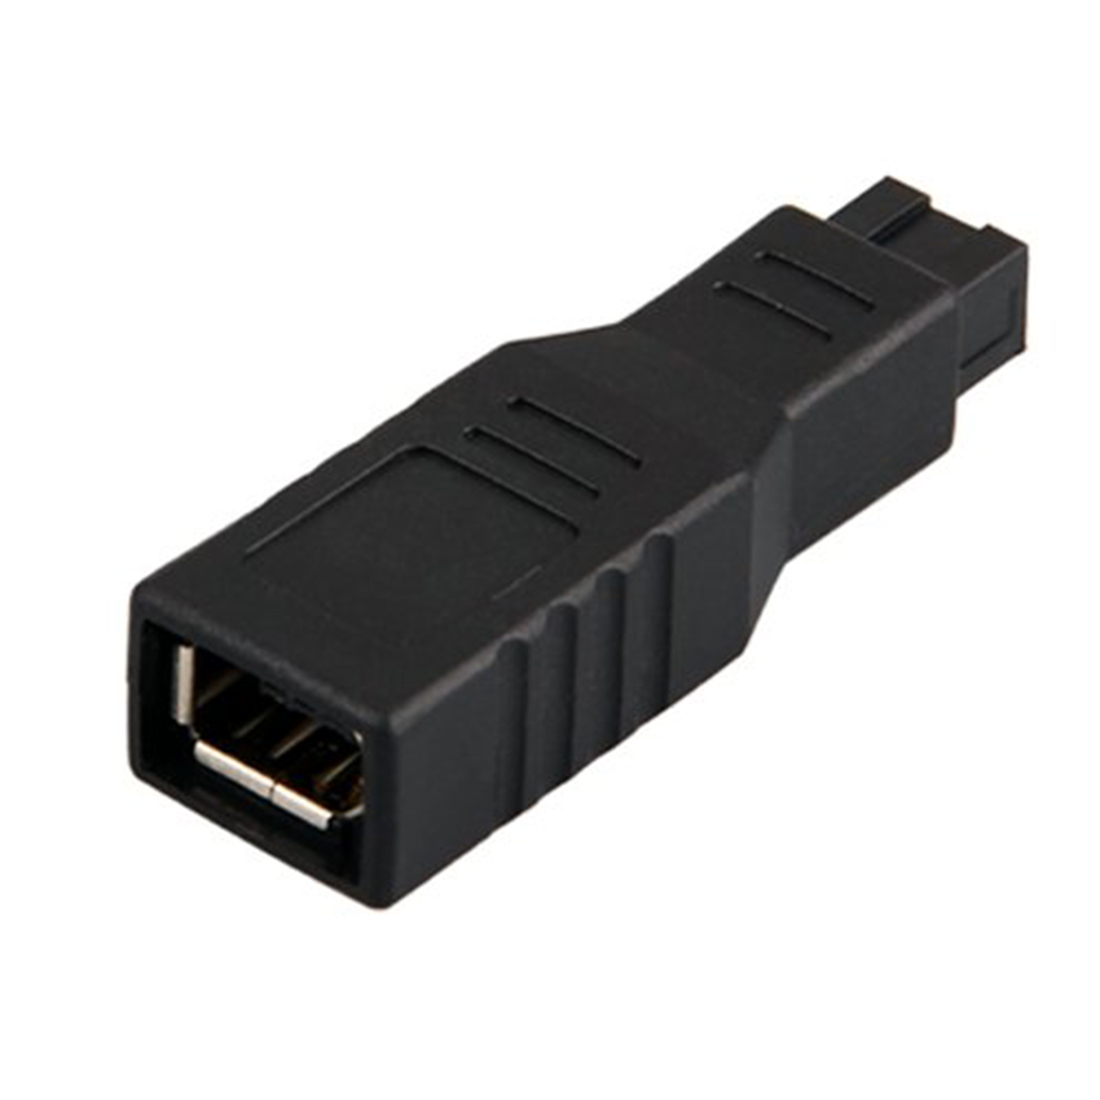 New Top Quality Black Firewire 400 to 800 Adapter - 6 pin to 9 pin Connector Wholesale сумка tommy hilfiger aw0aw04857 901 corp cb